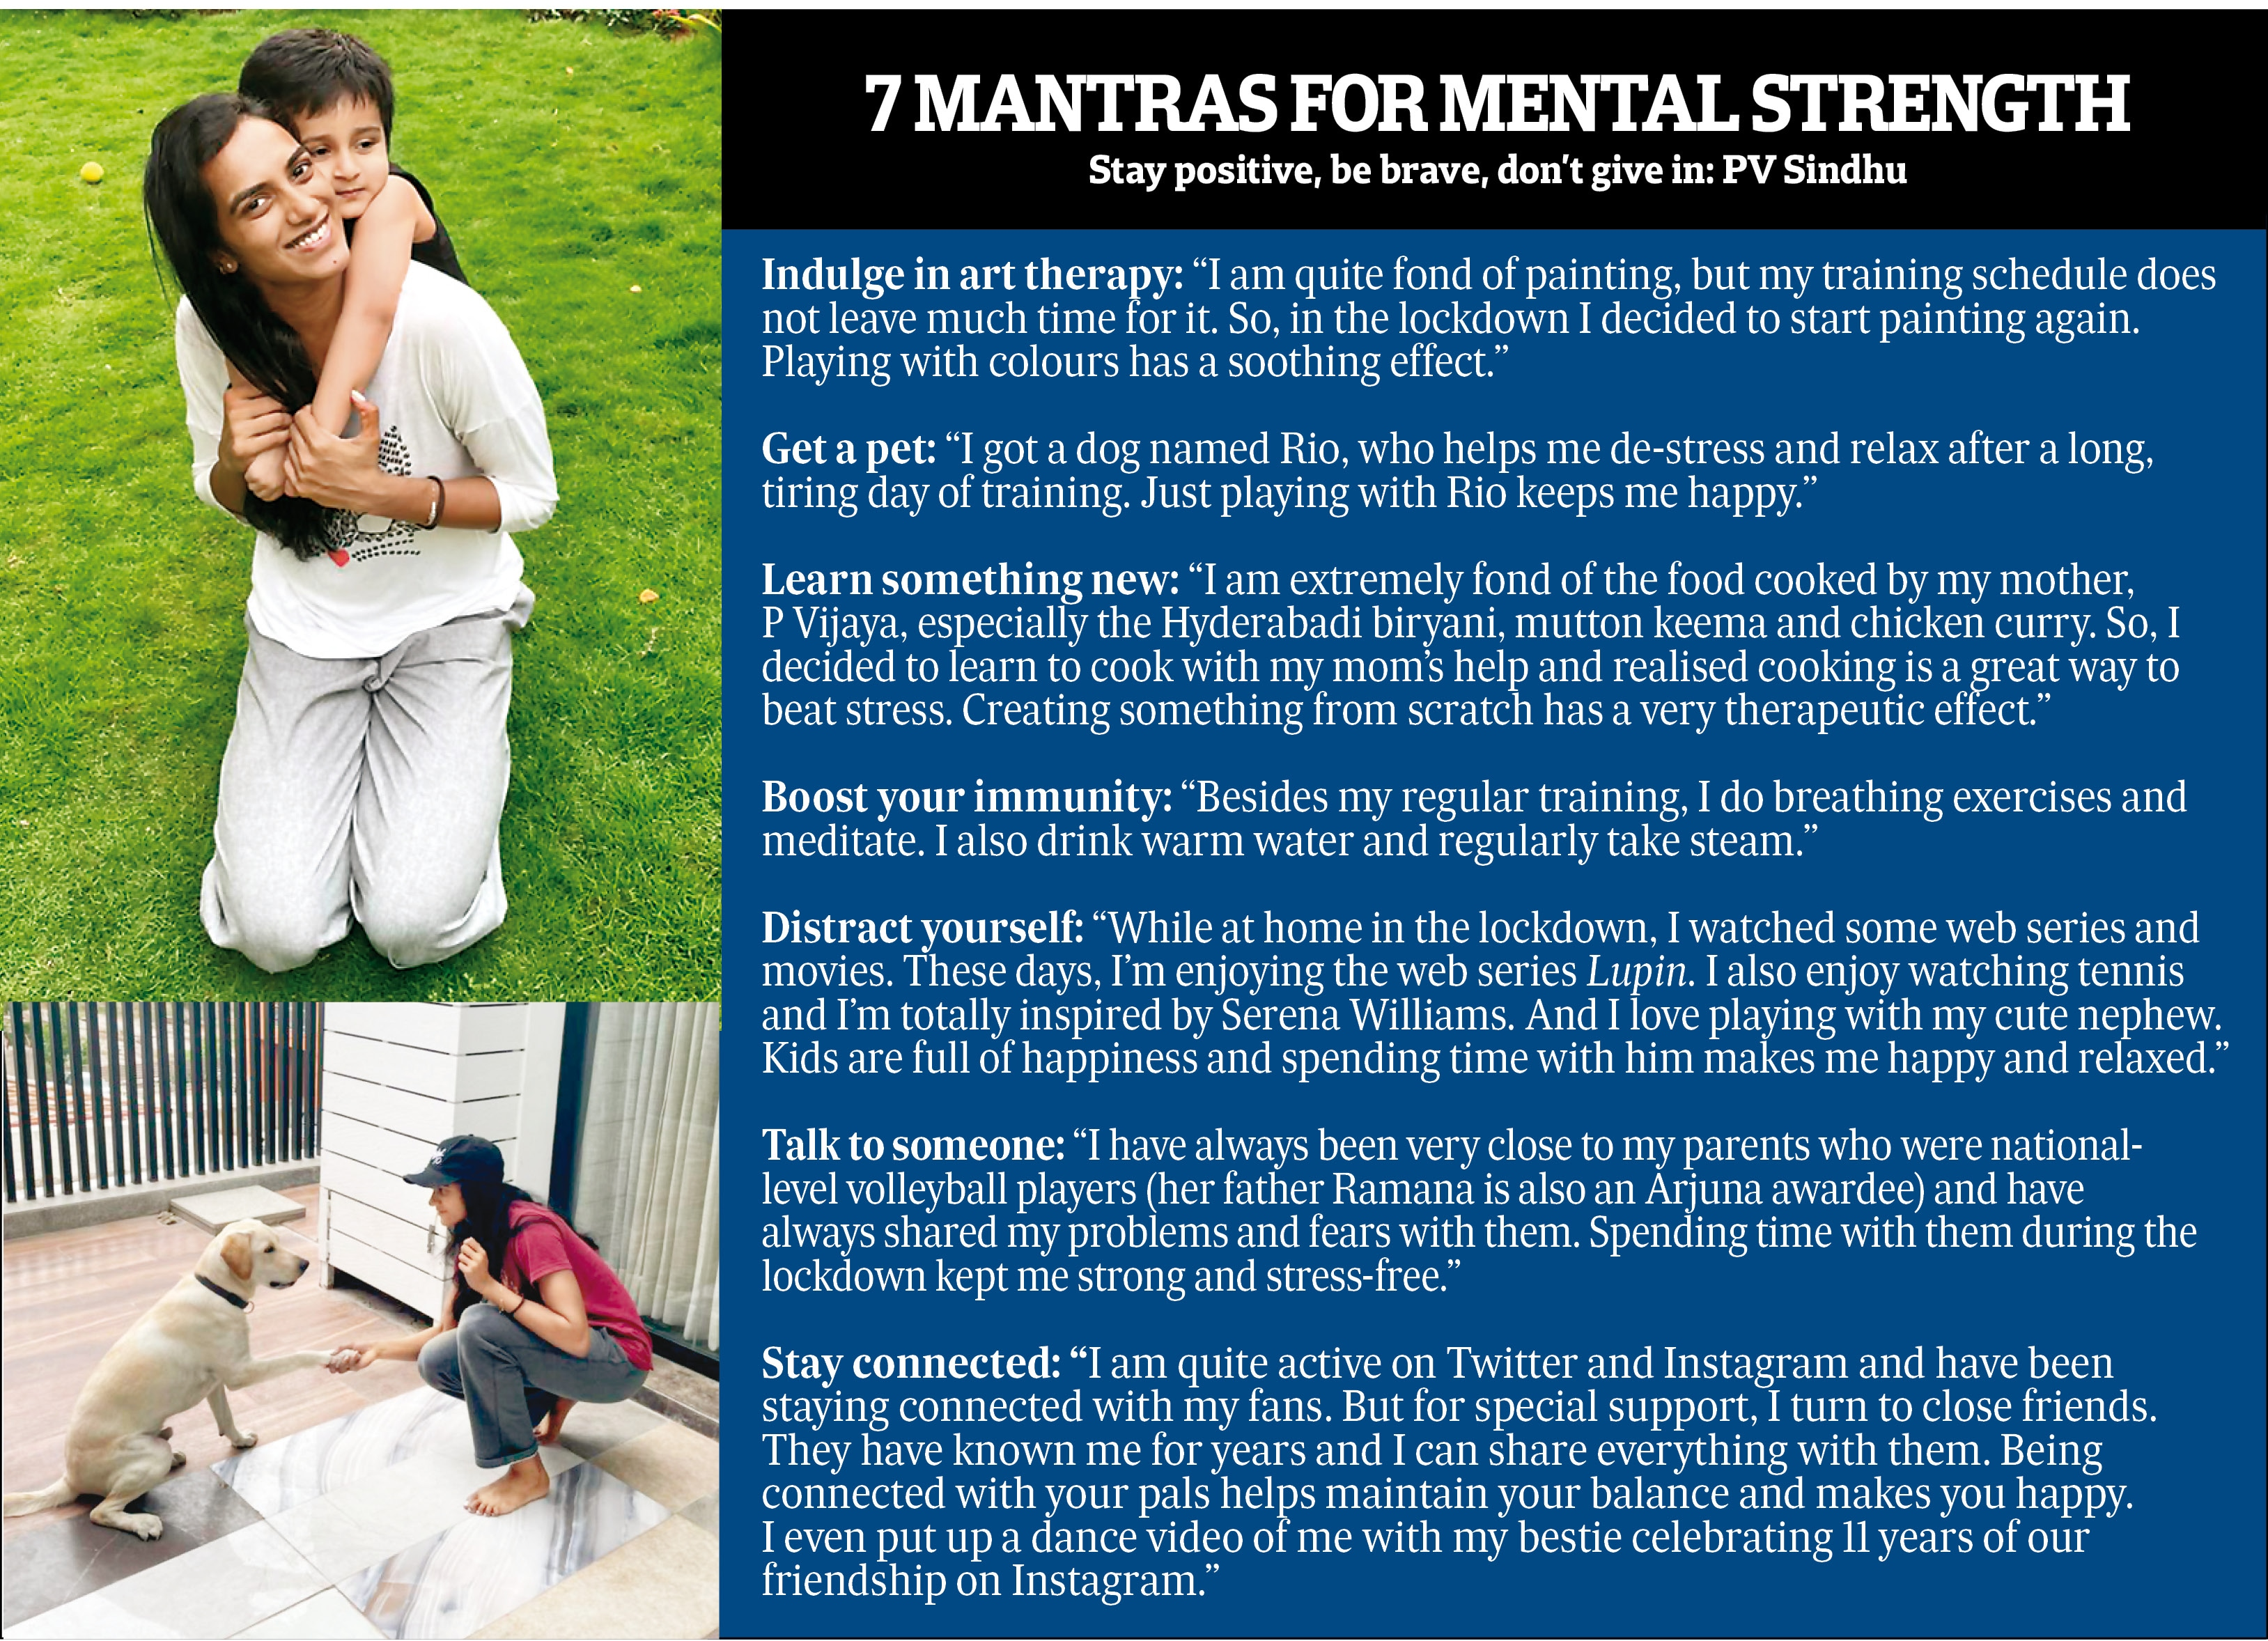 How PV Sindhu keeps mentally fit